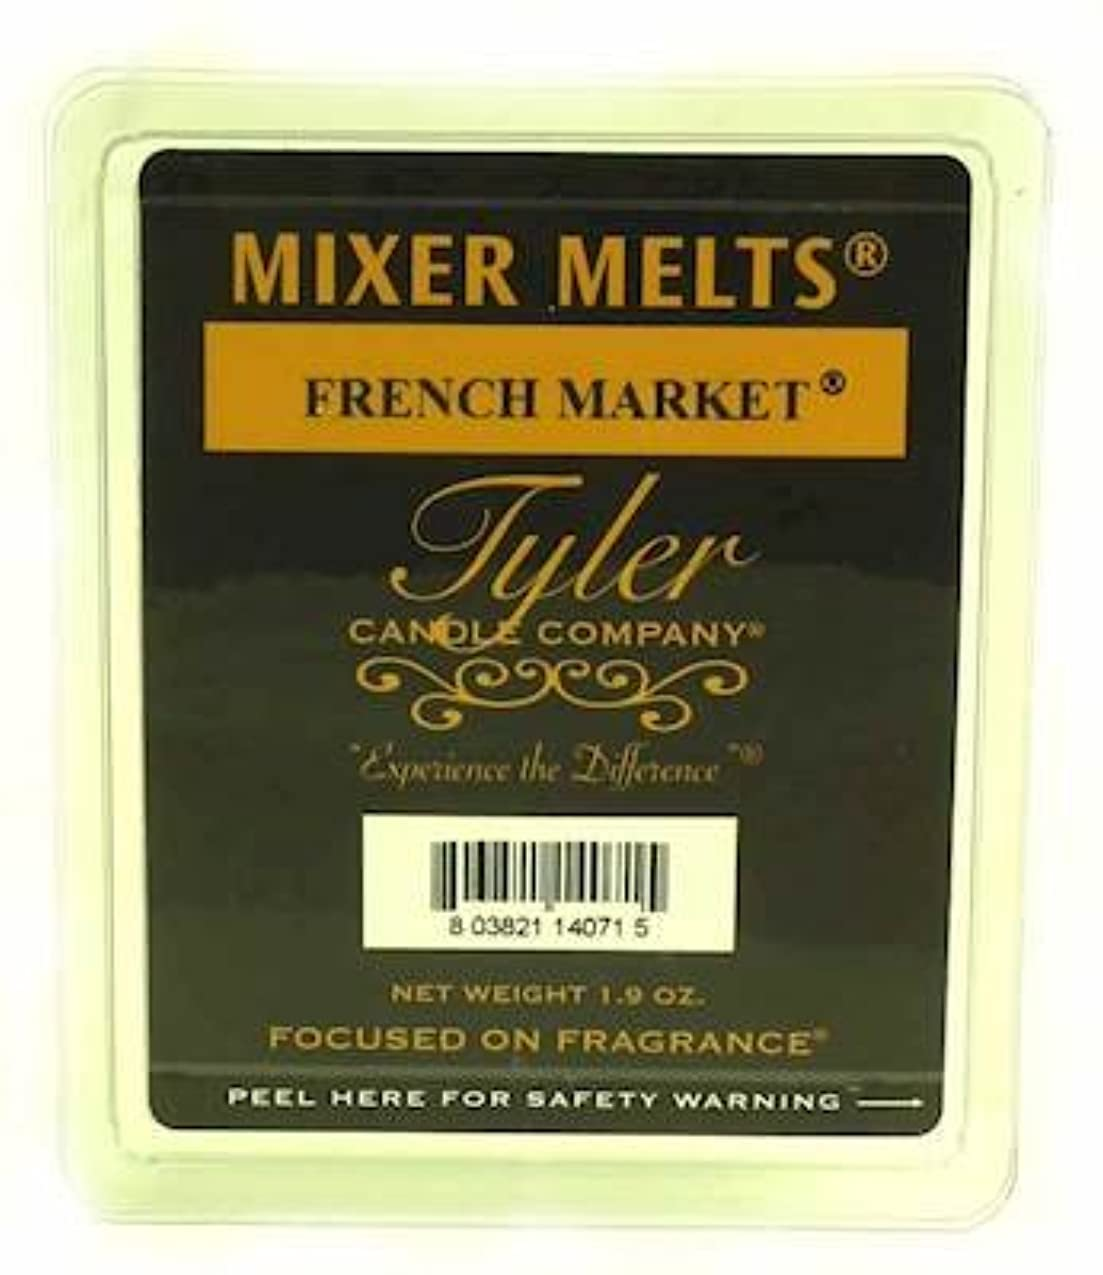 Tyler Candles Mixer Melts - French Market by Tyler Company